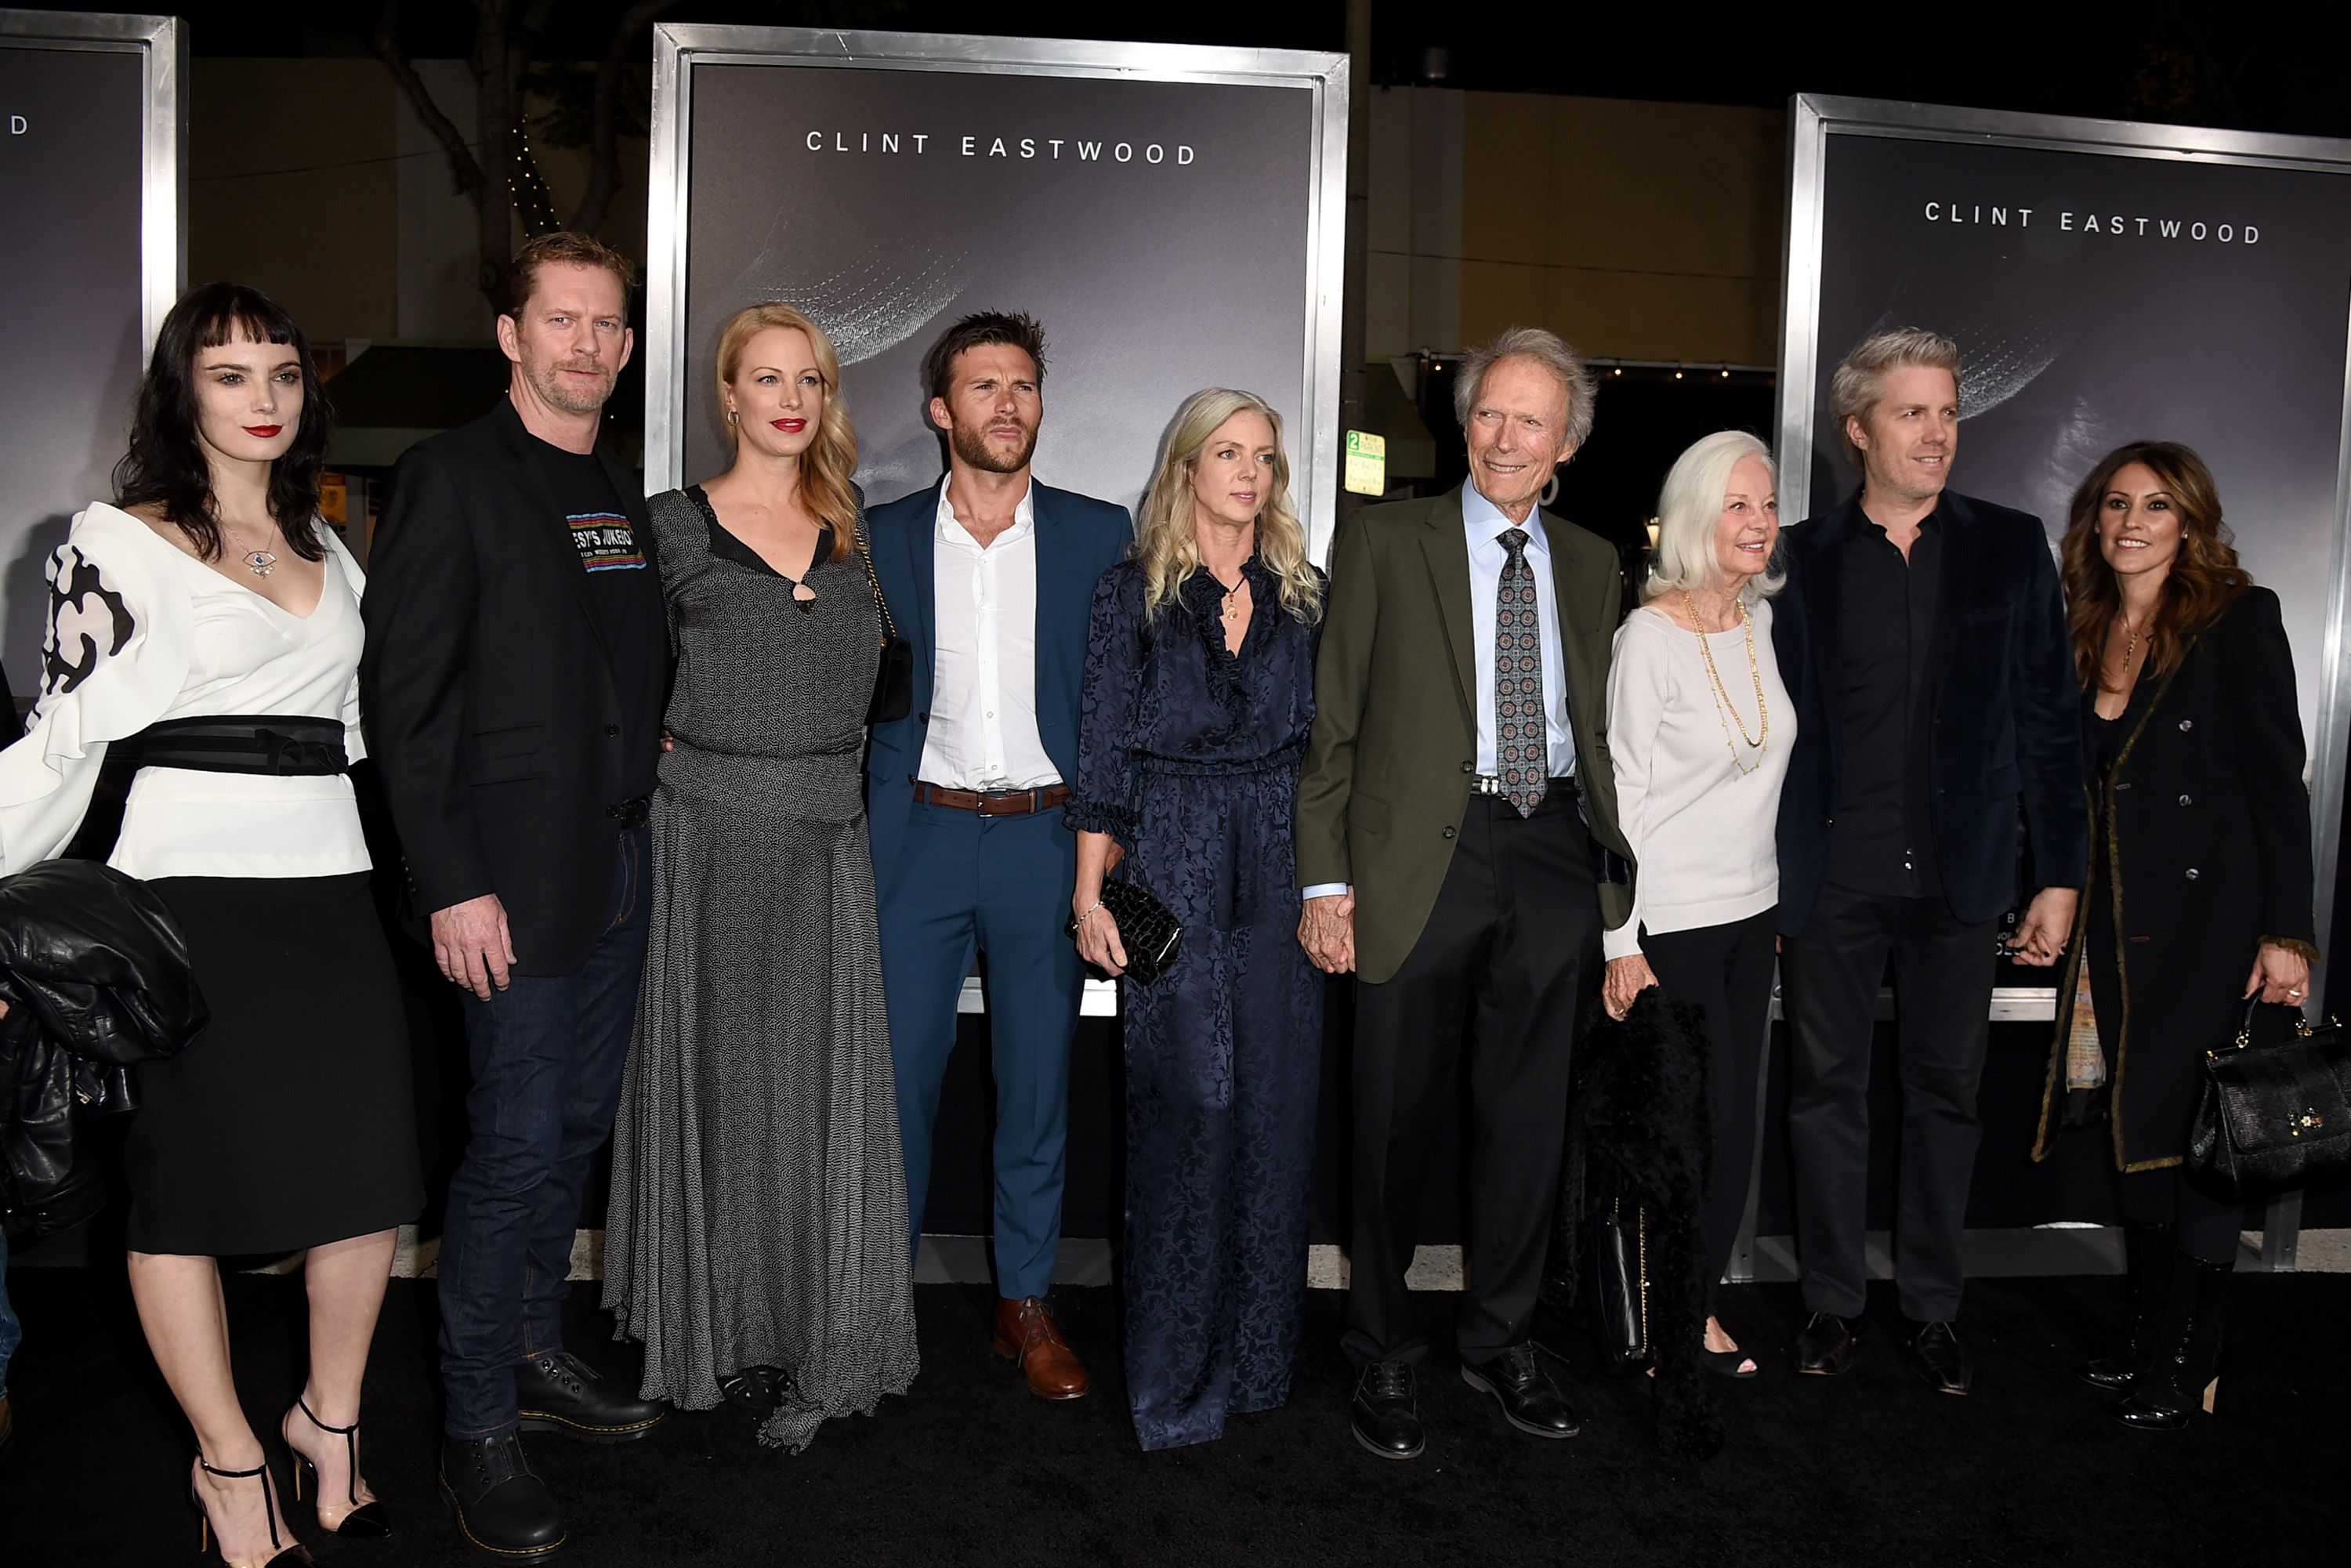 Clint Eastwood and his kids at the premiere of The Mule at the Village Theatre on December 10, 2018. | Photo: Getty Images